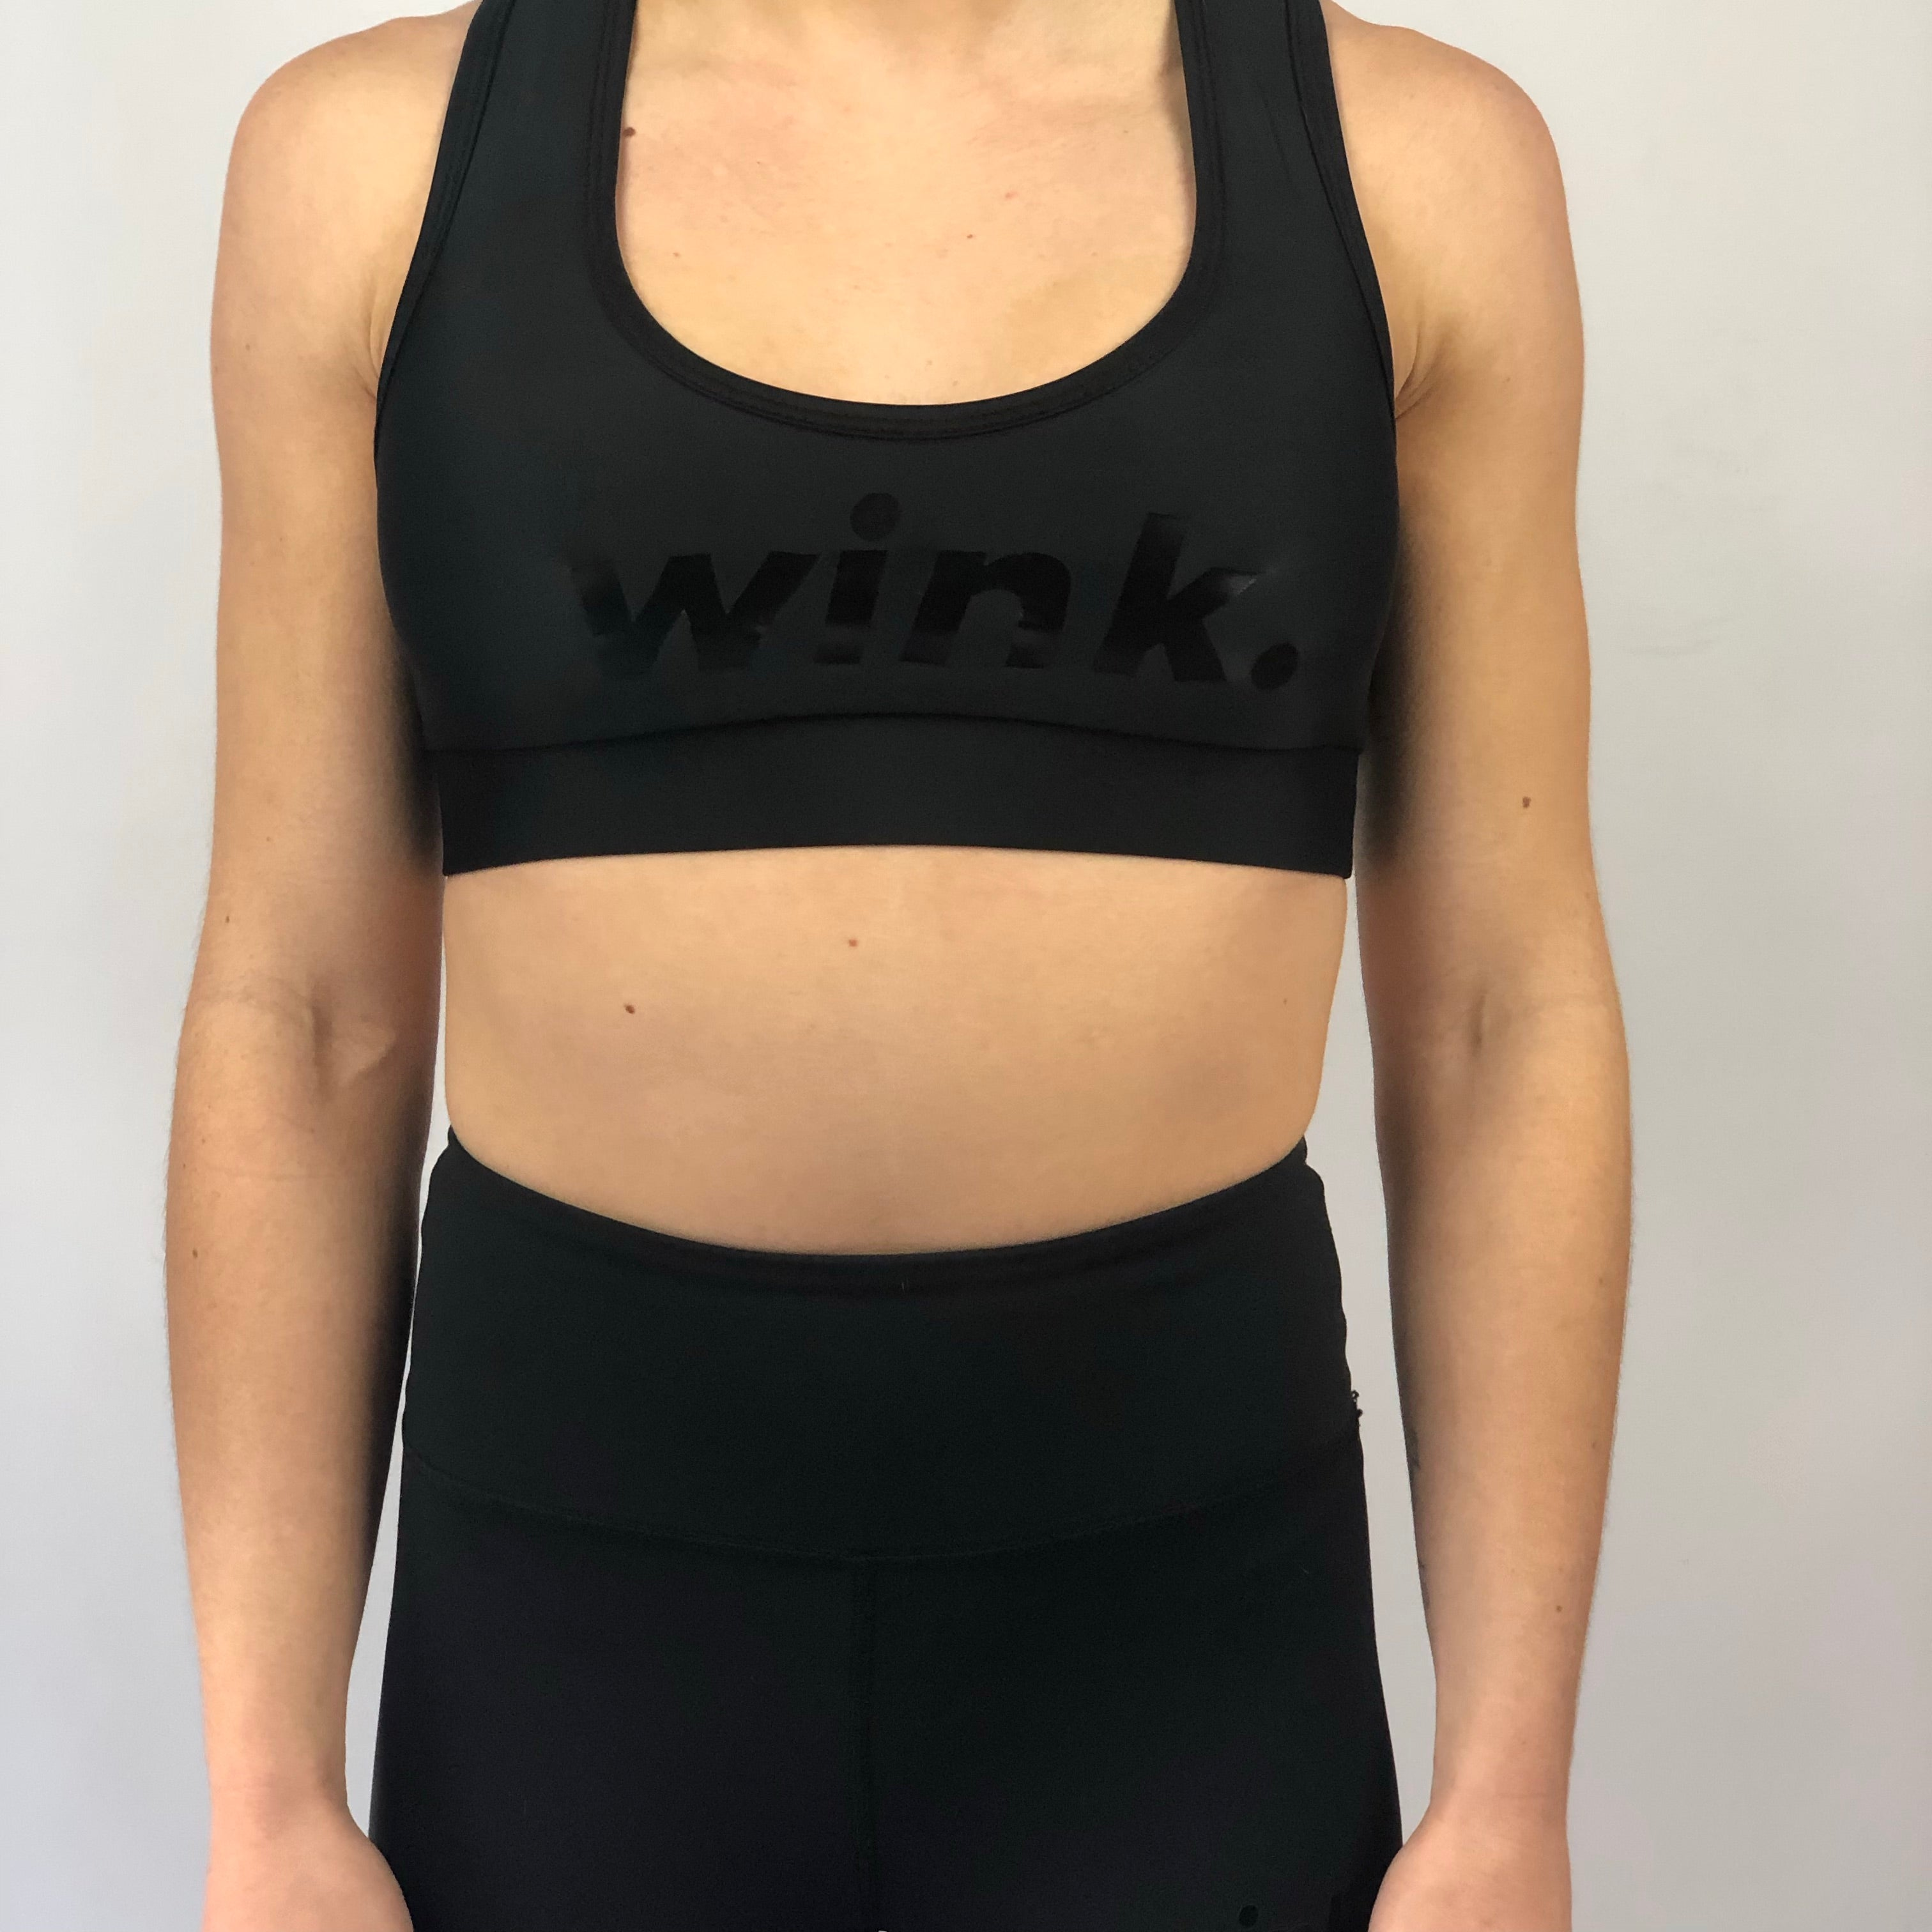 Rogue 2.0 Sports Bra - Stealth